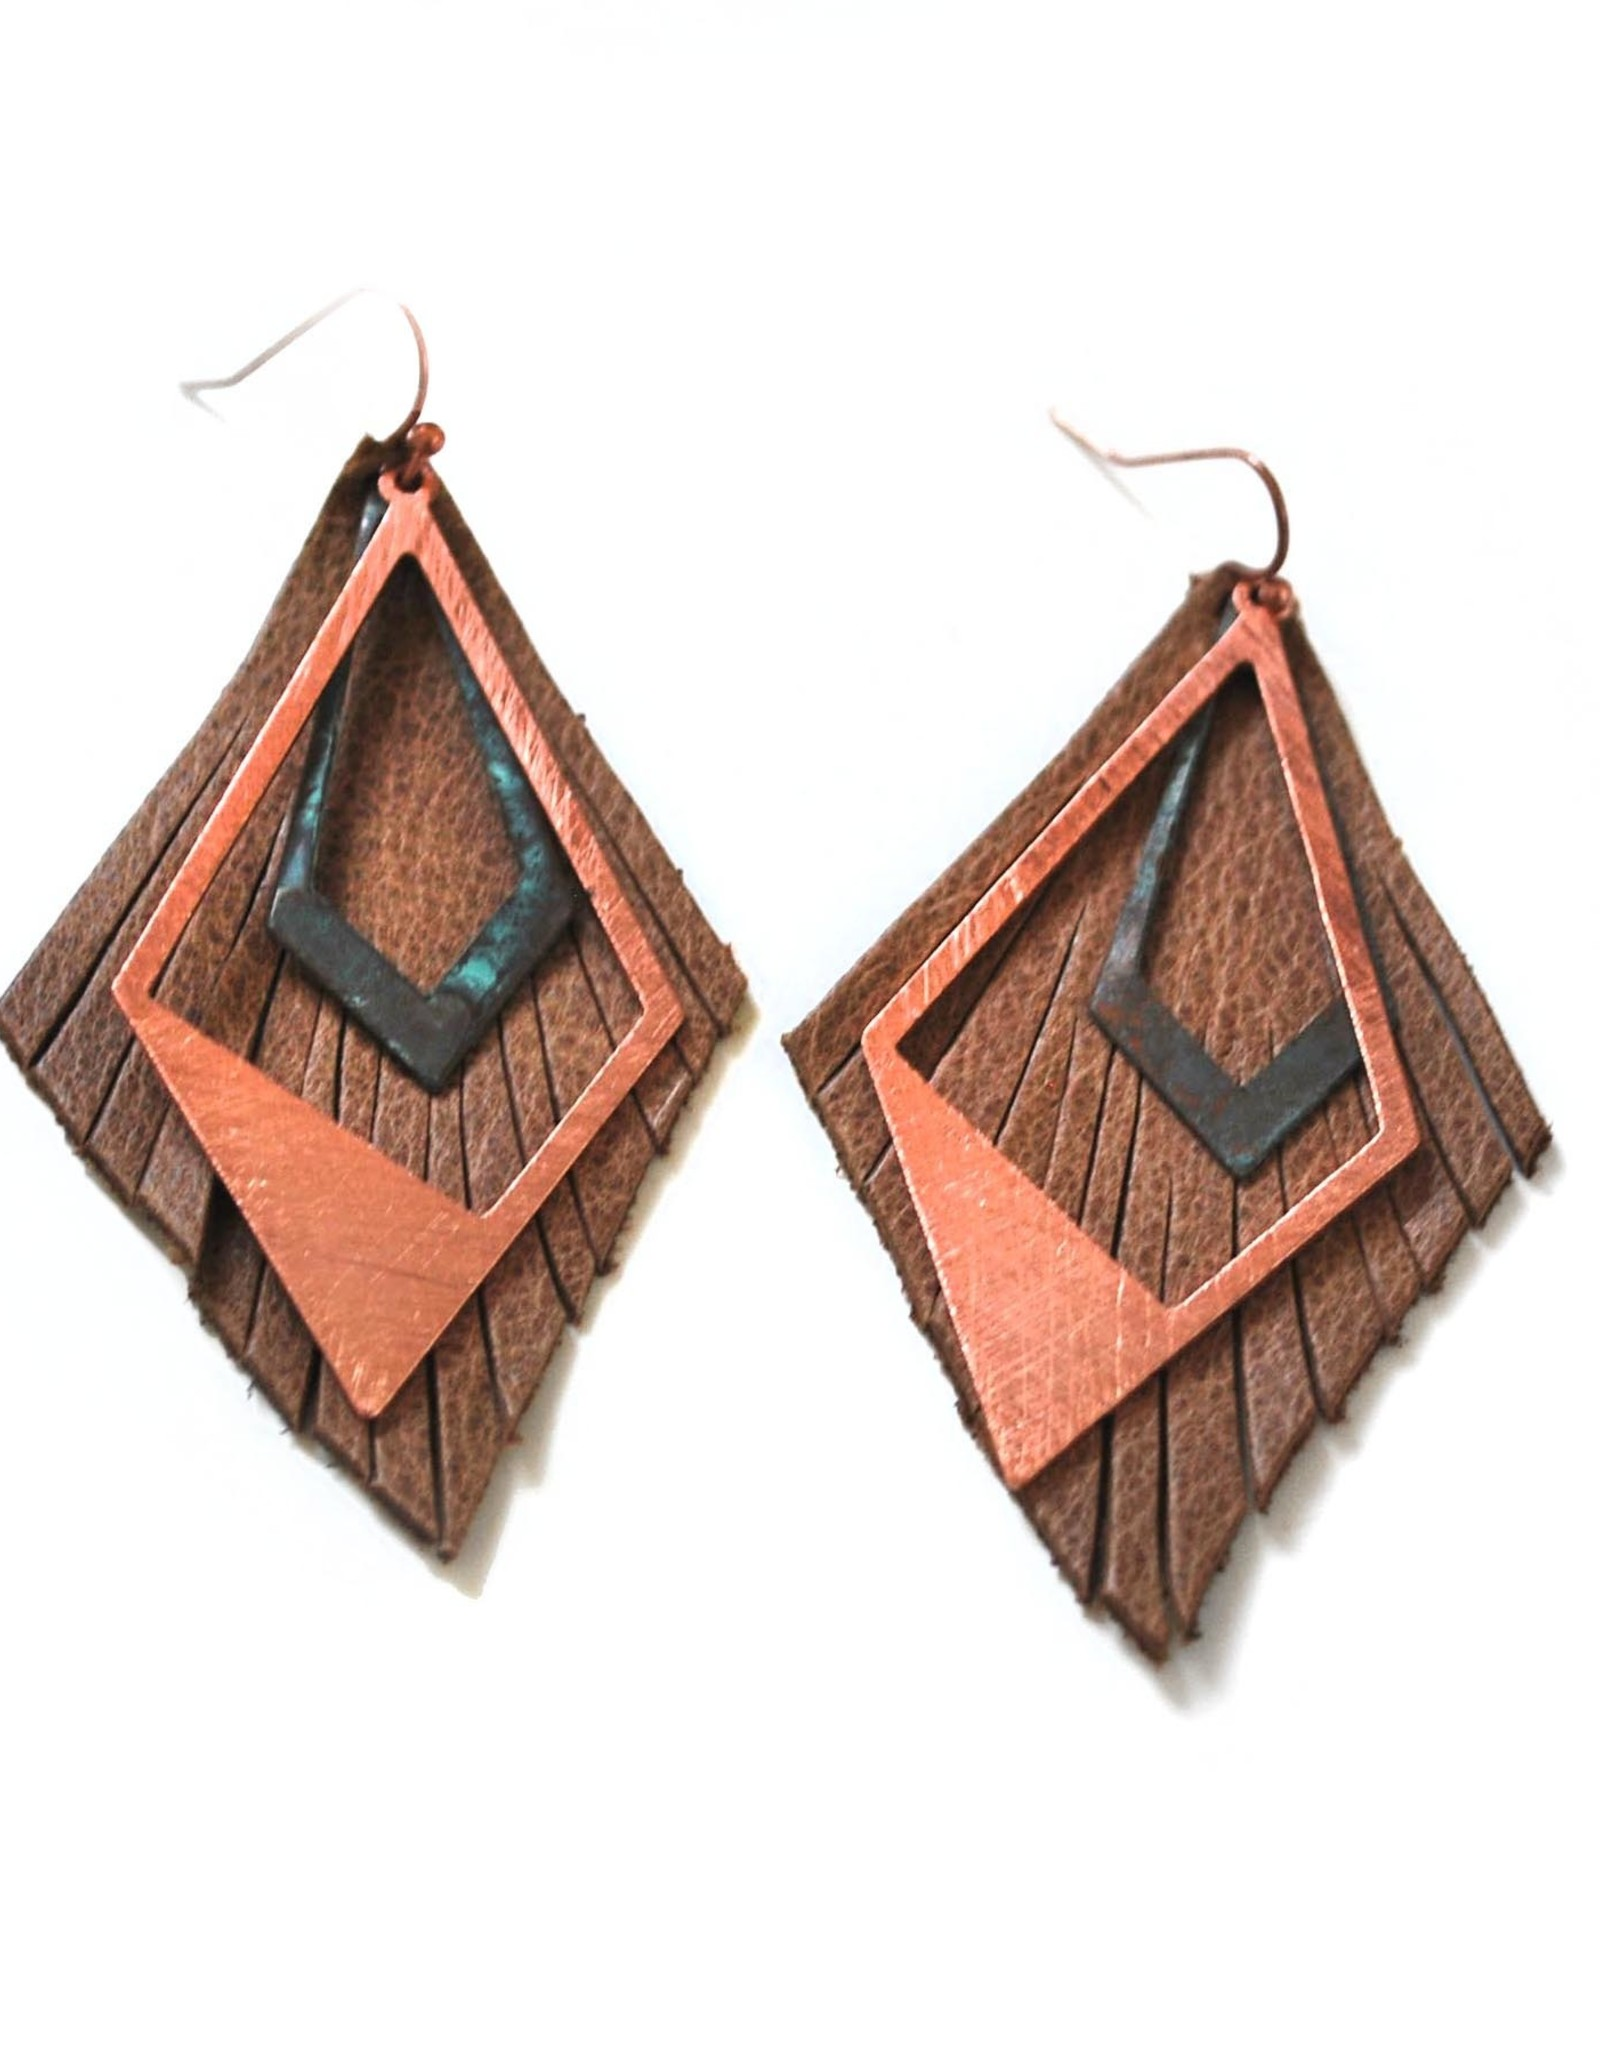 Geometric Upcycled Leather Earrings by Eva Airam Studio